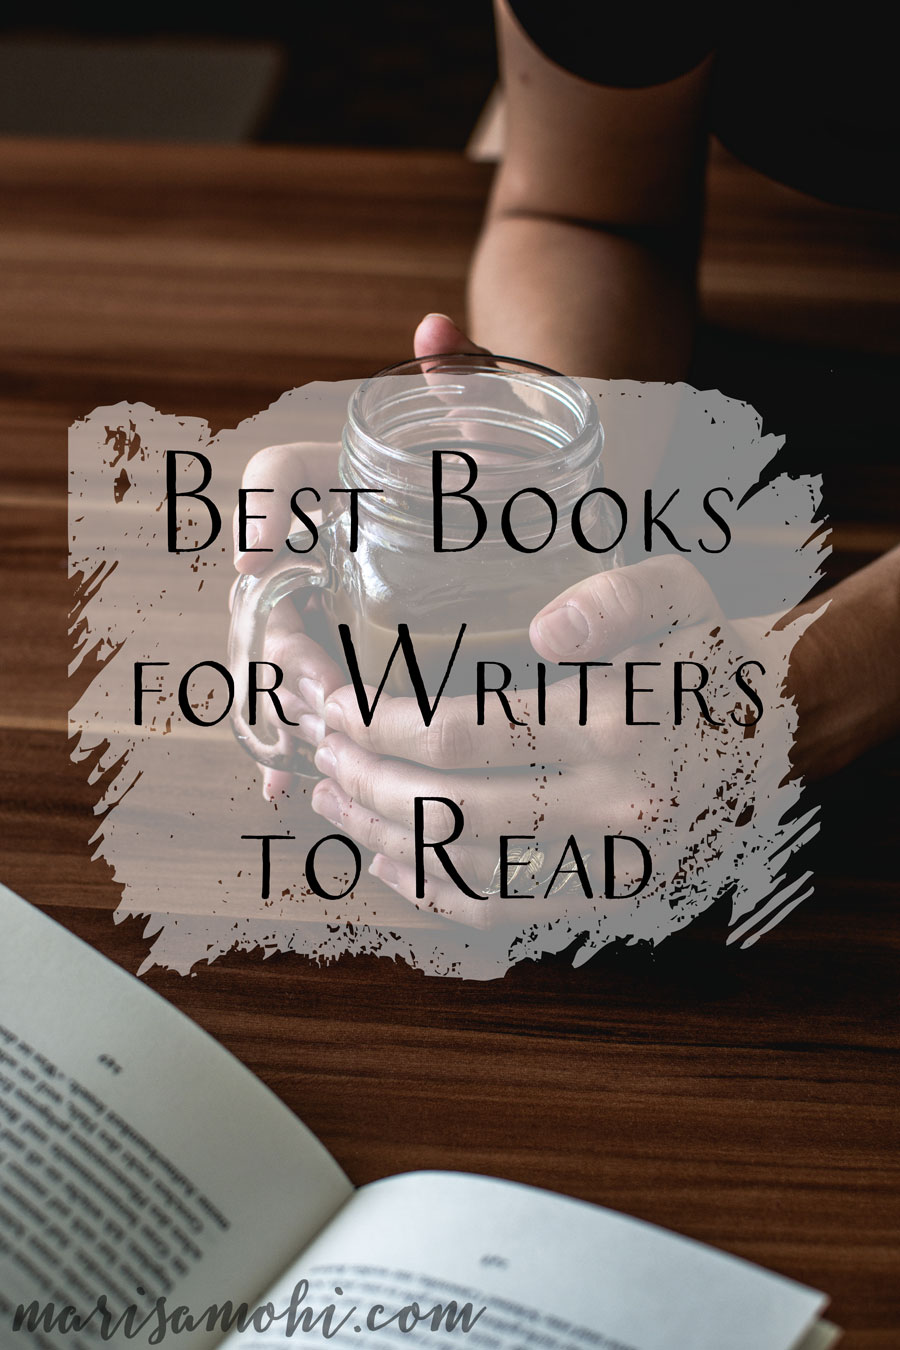 Best Books for Writers to Read